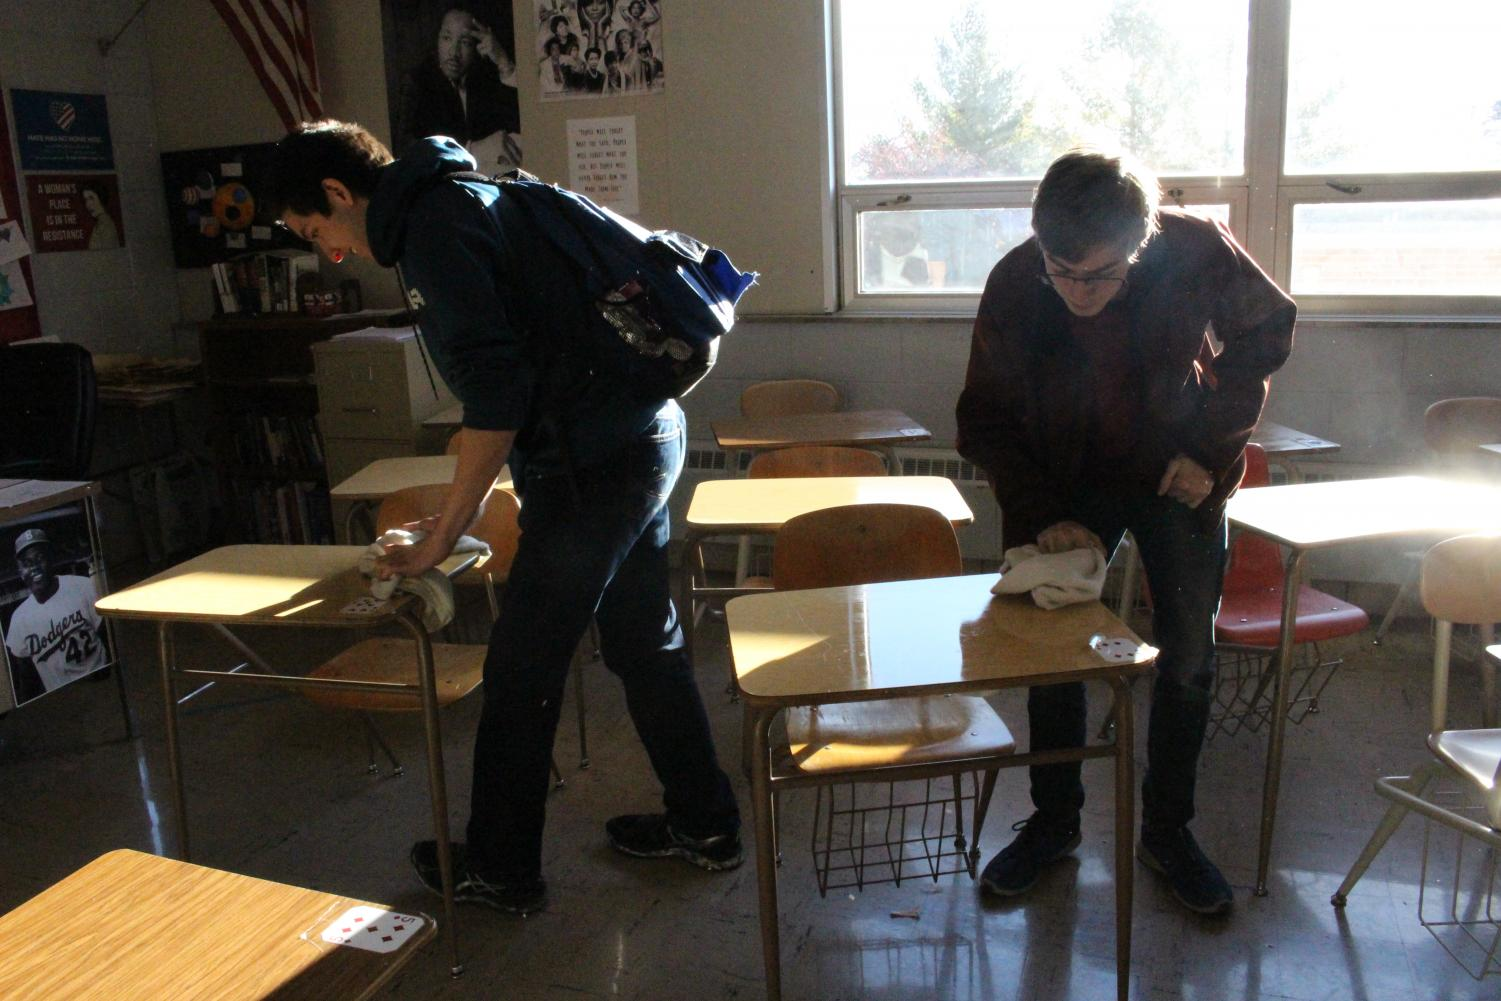 Many+students+chose+to+help+make+their+classrooms+cleaner+by+wiping+off+desks.